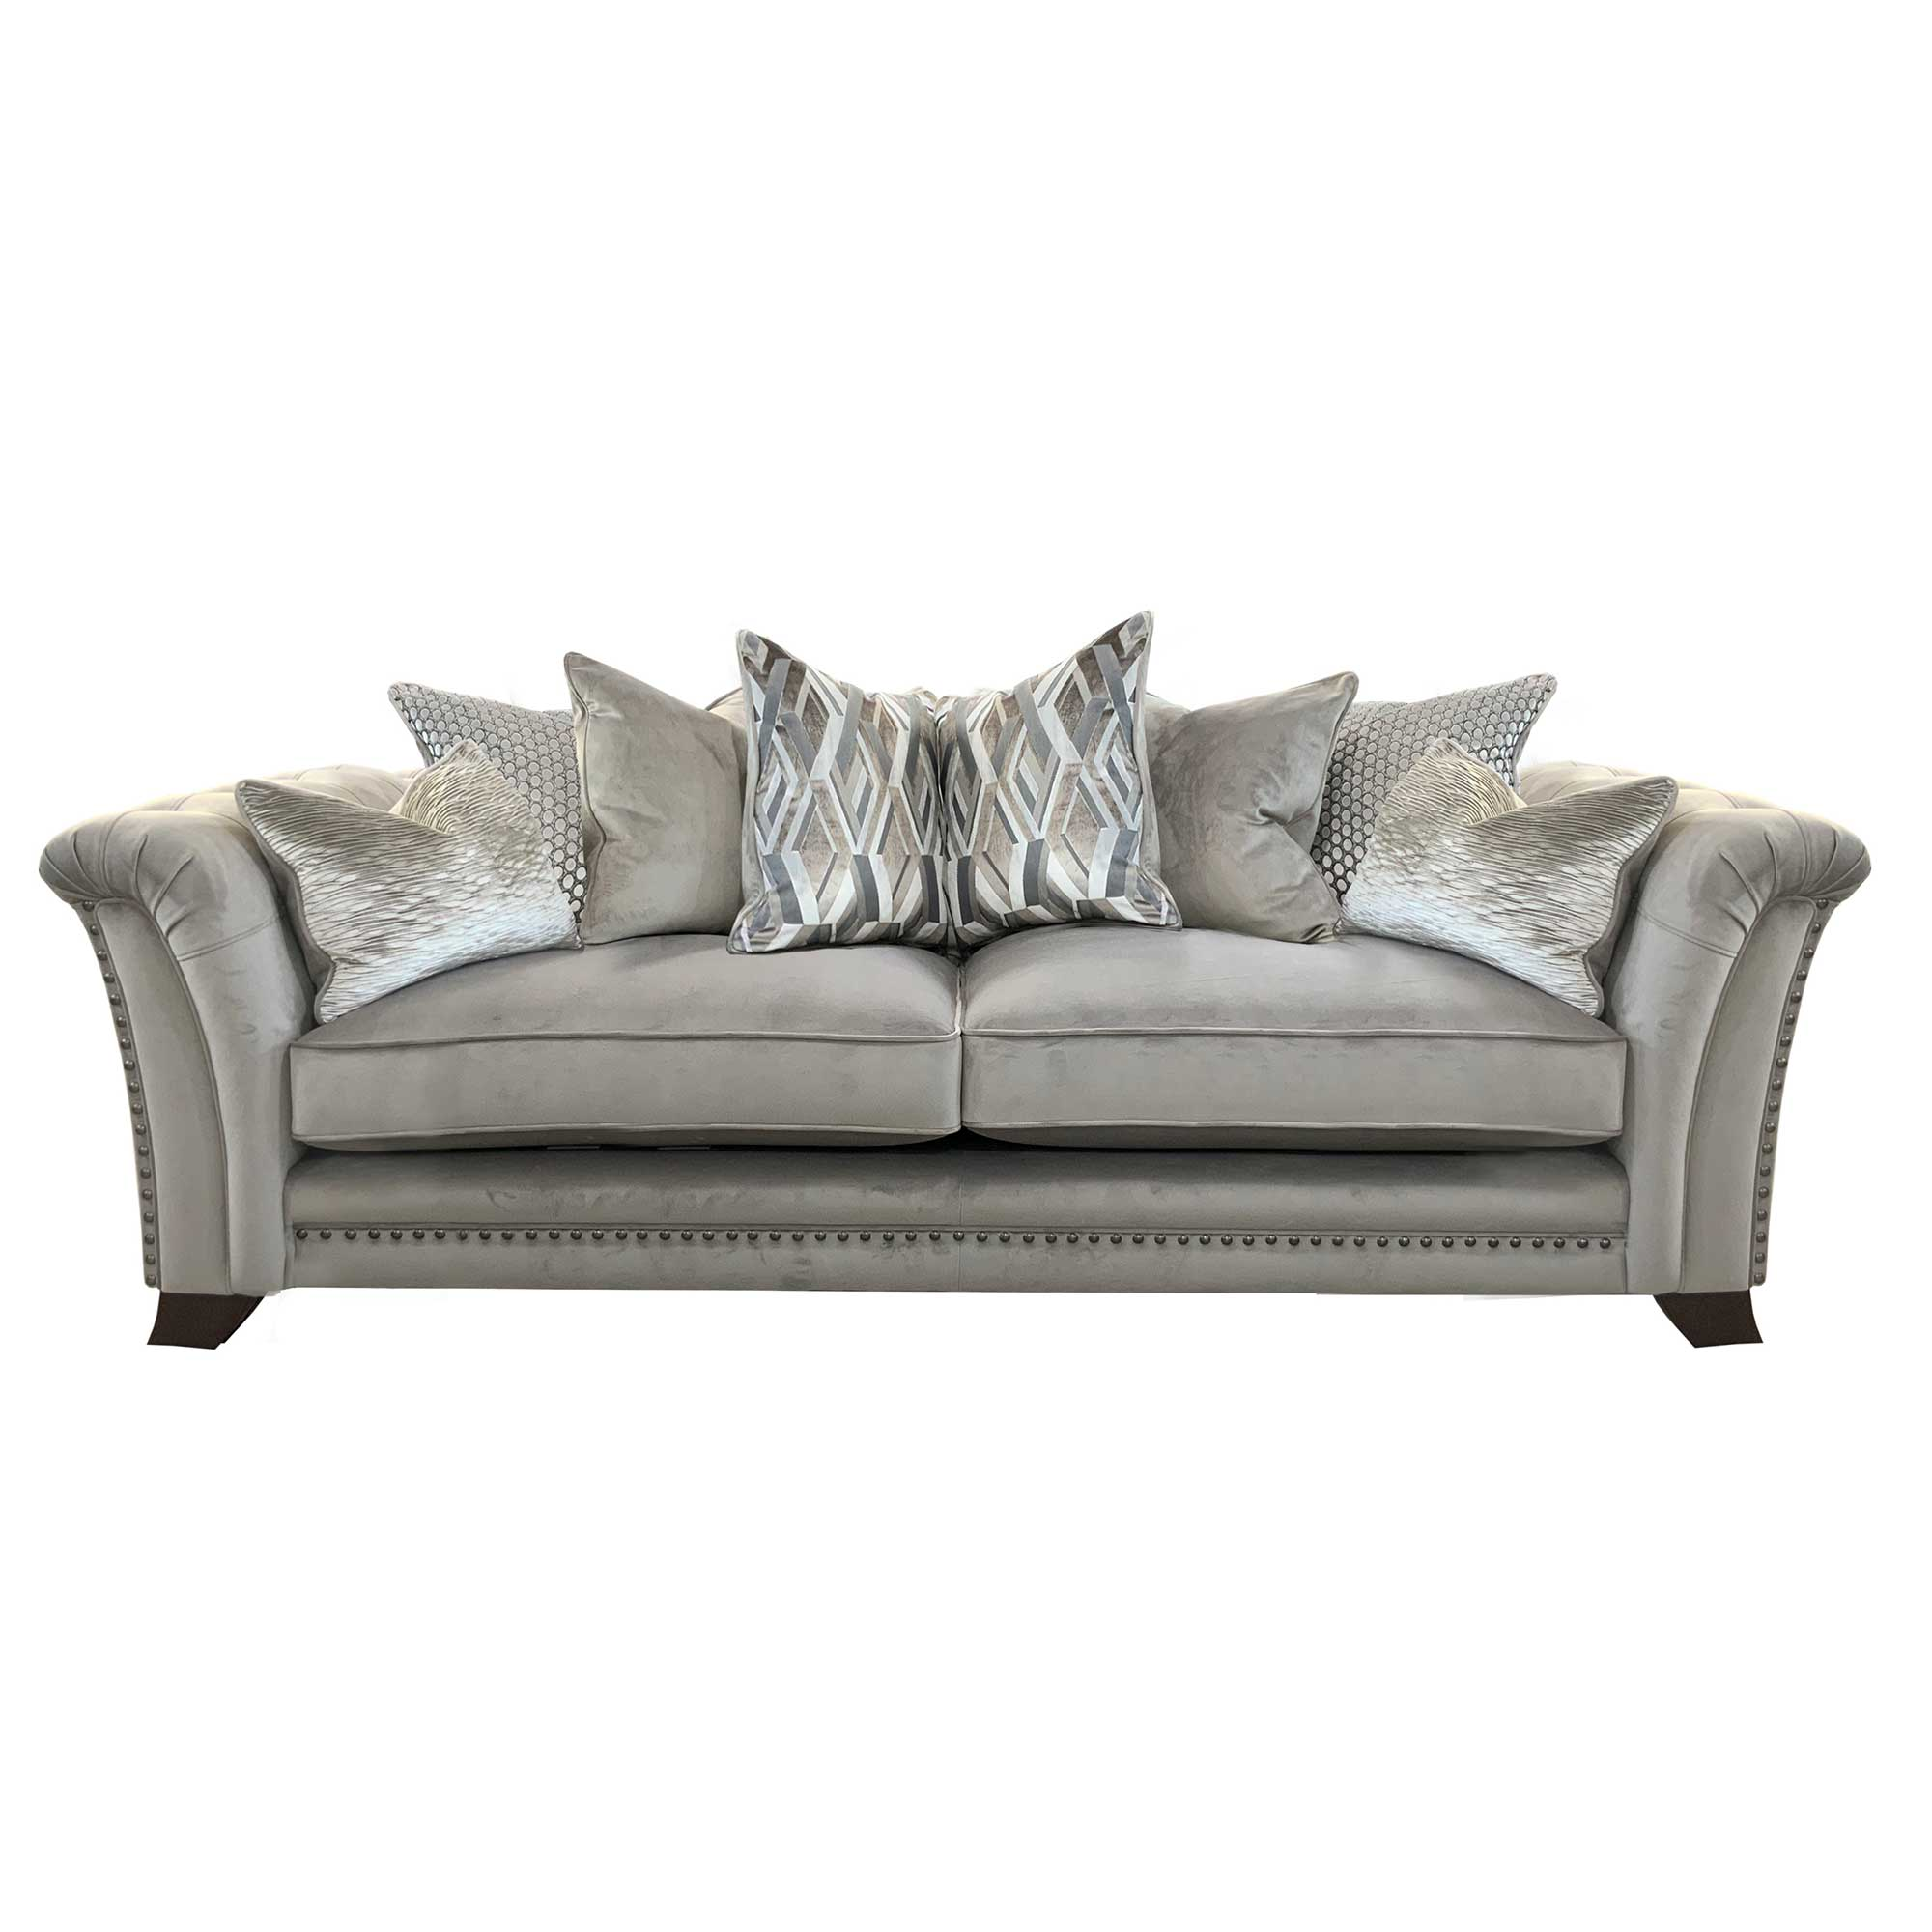 LUTON 4 SEATER PILLOW BACK